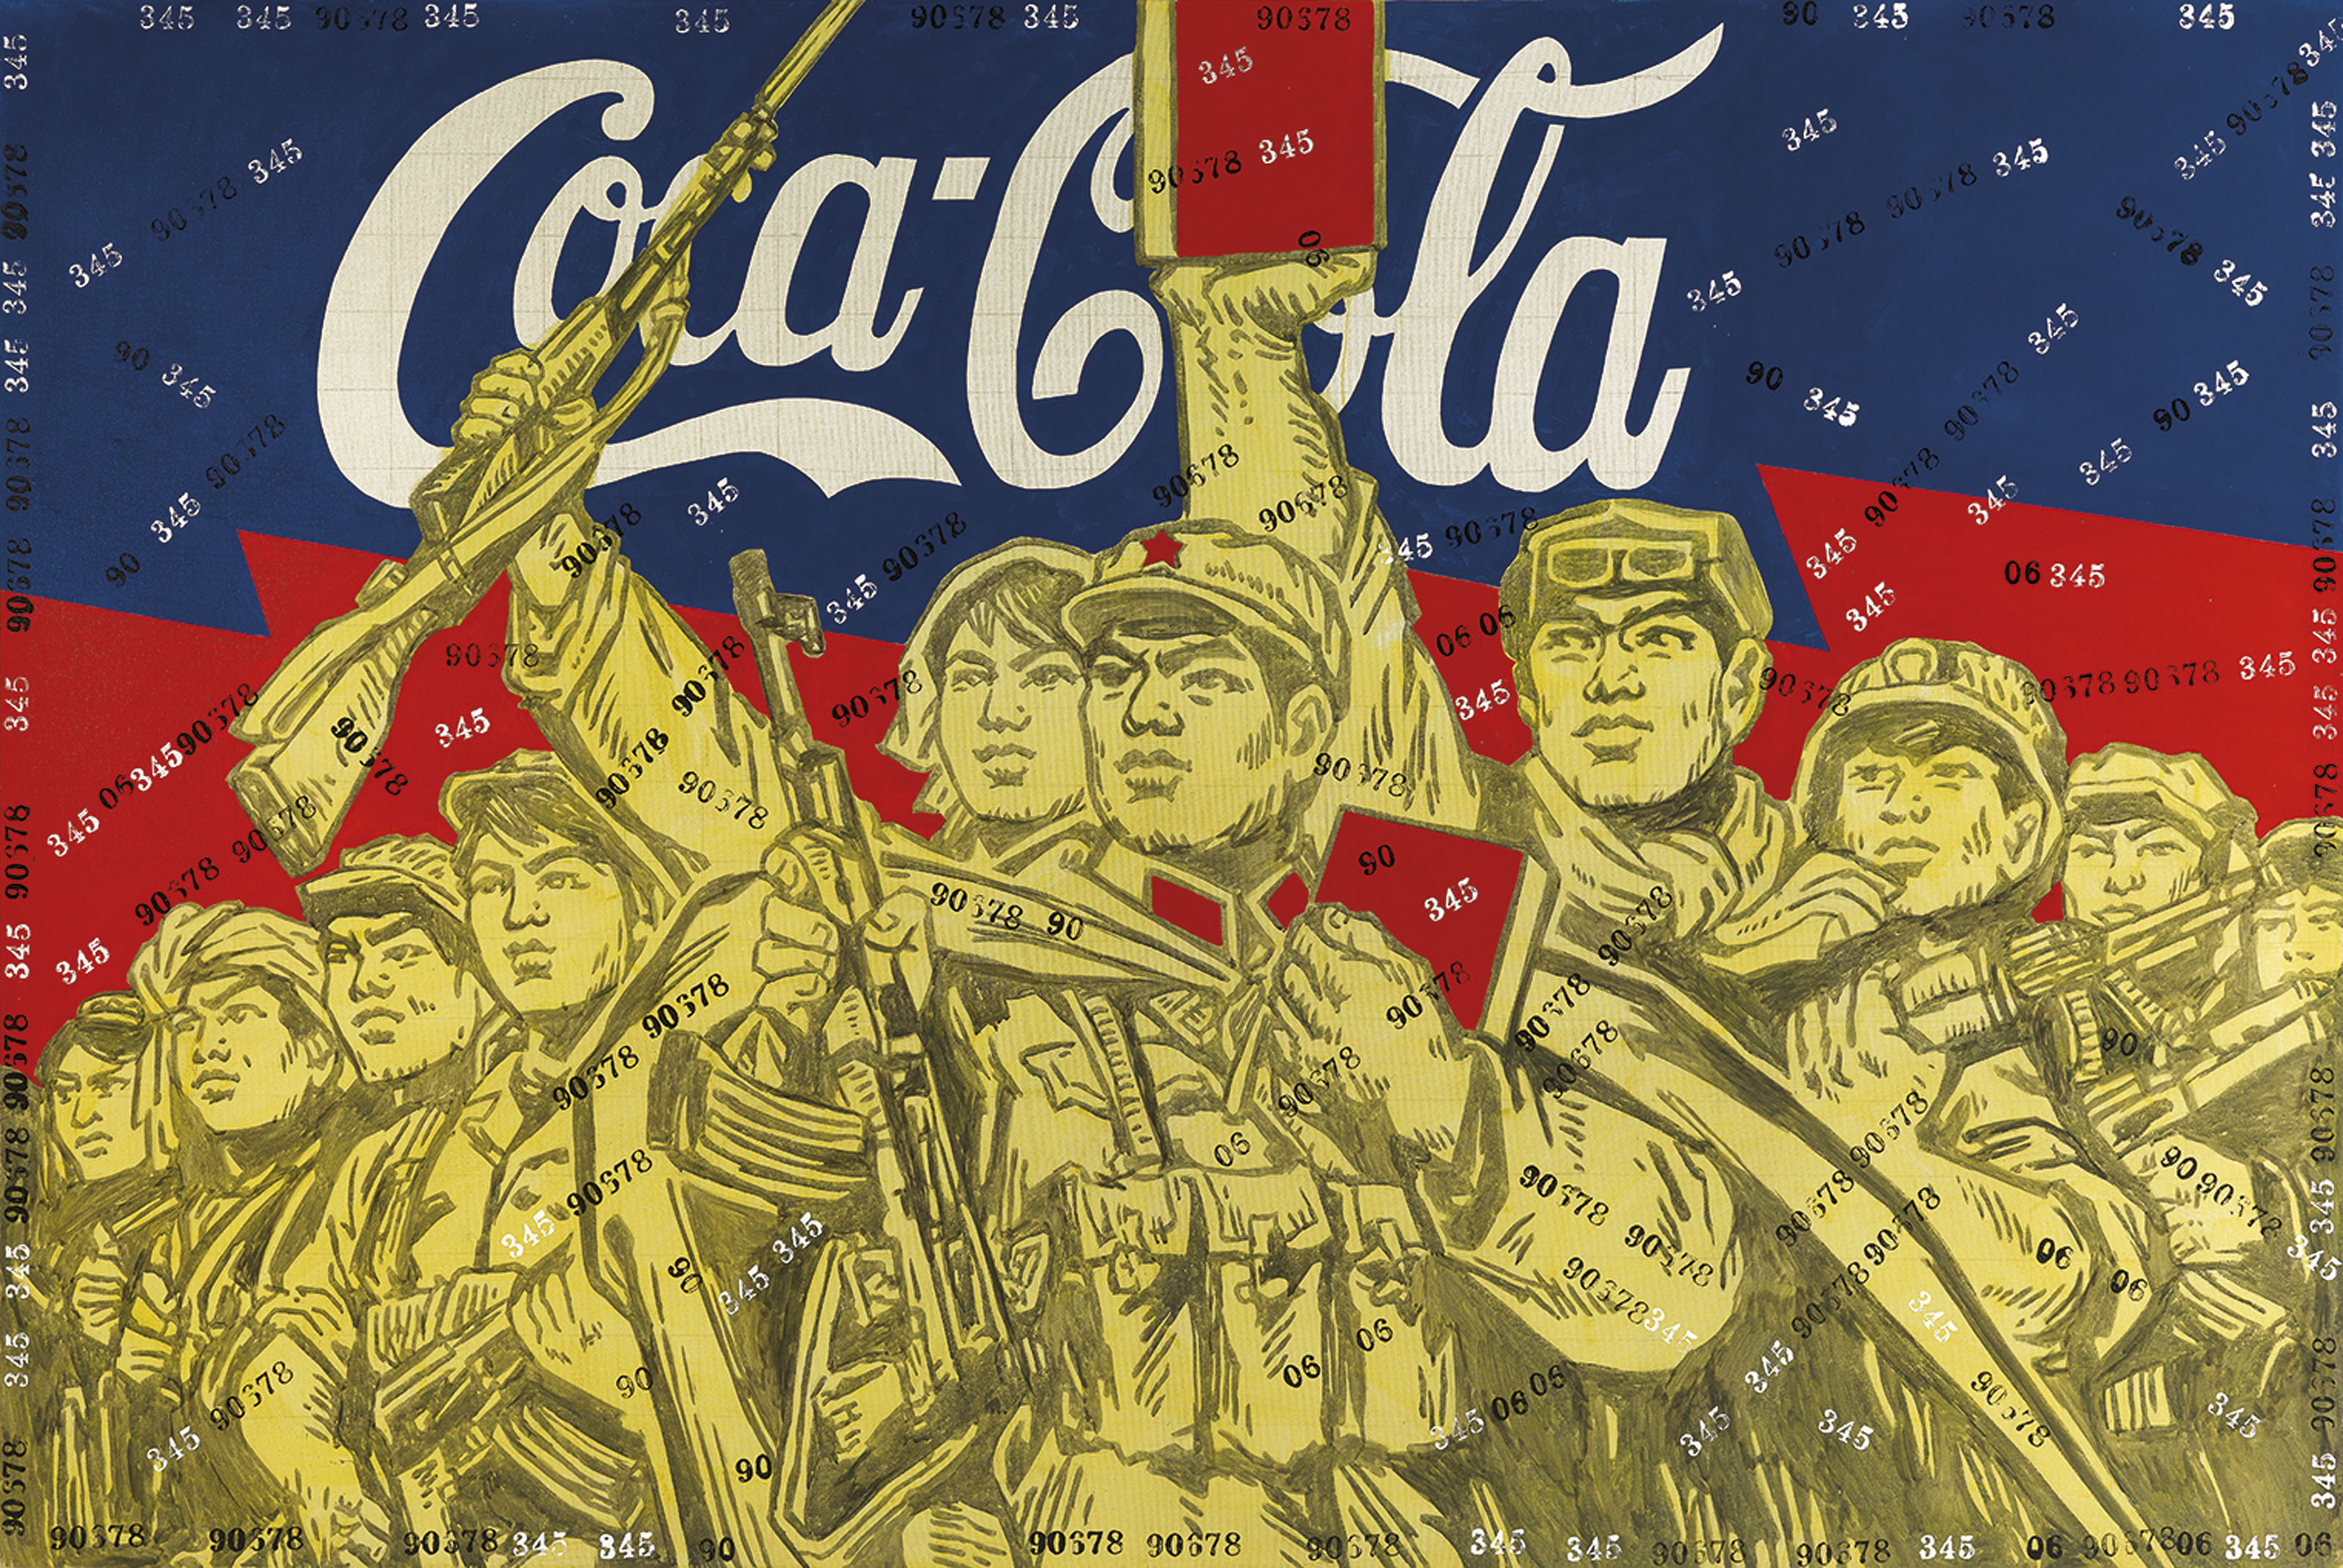 Great Criticism Series: Coca Cola